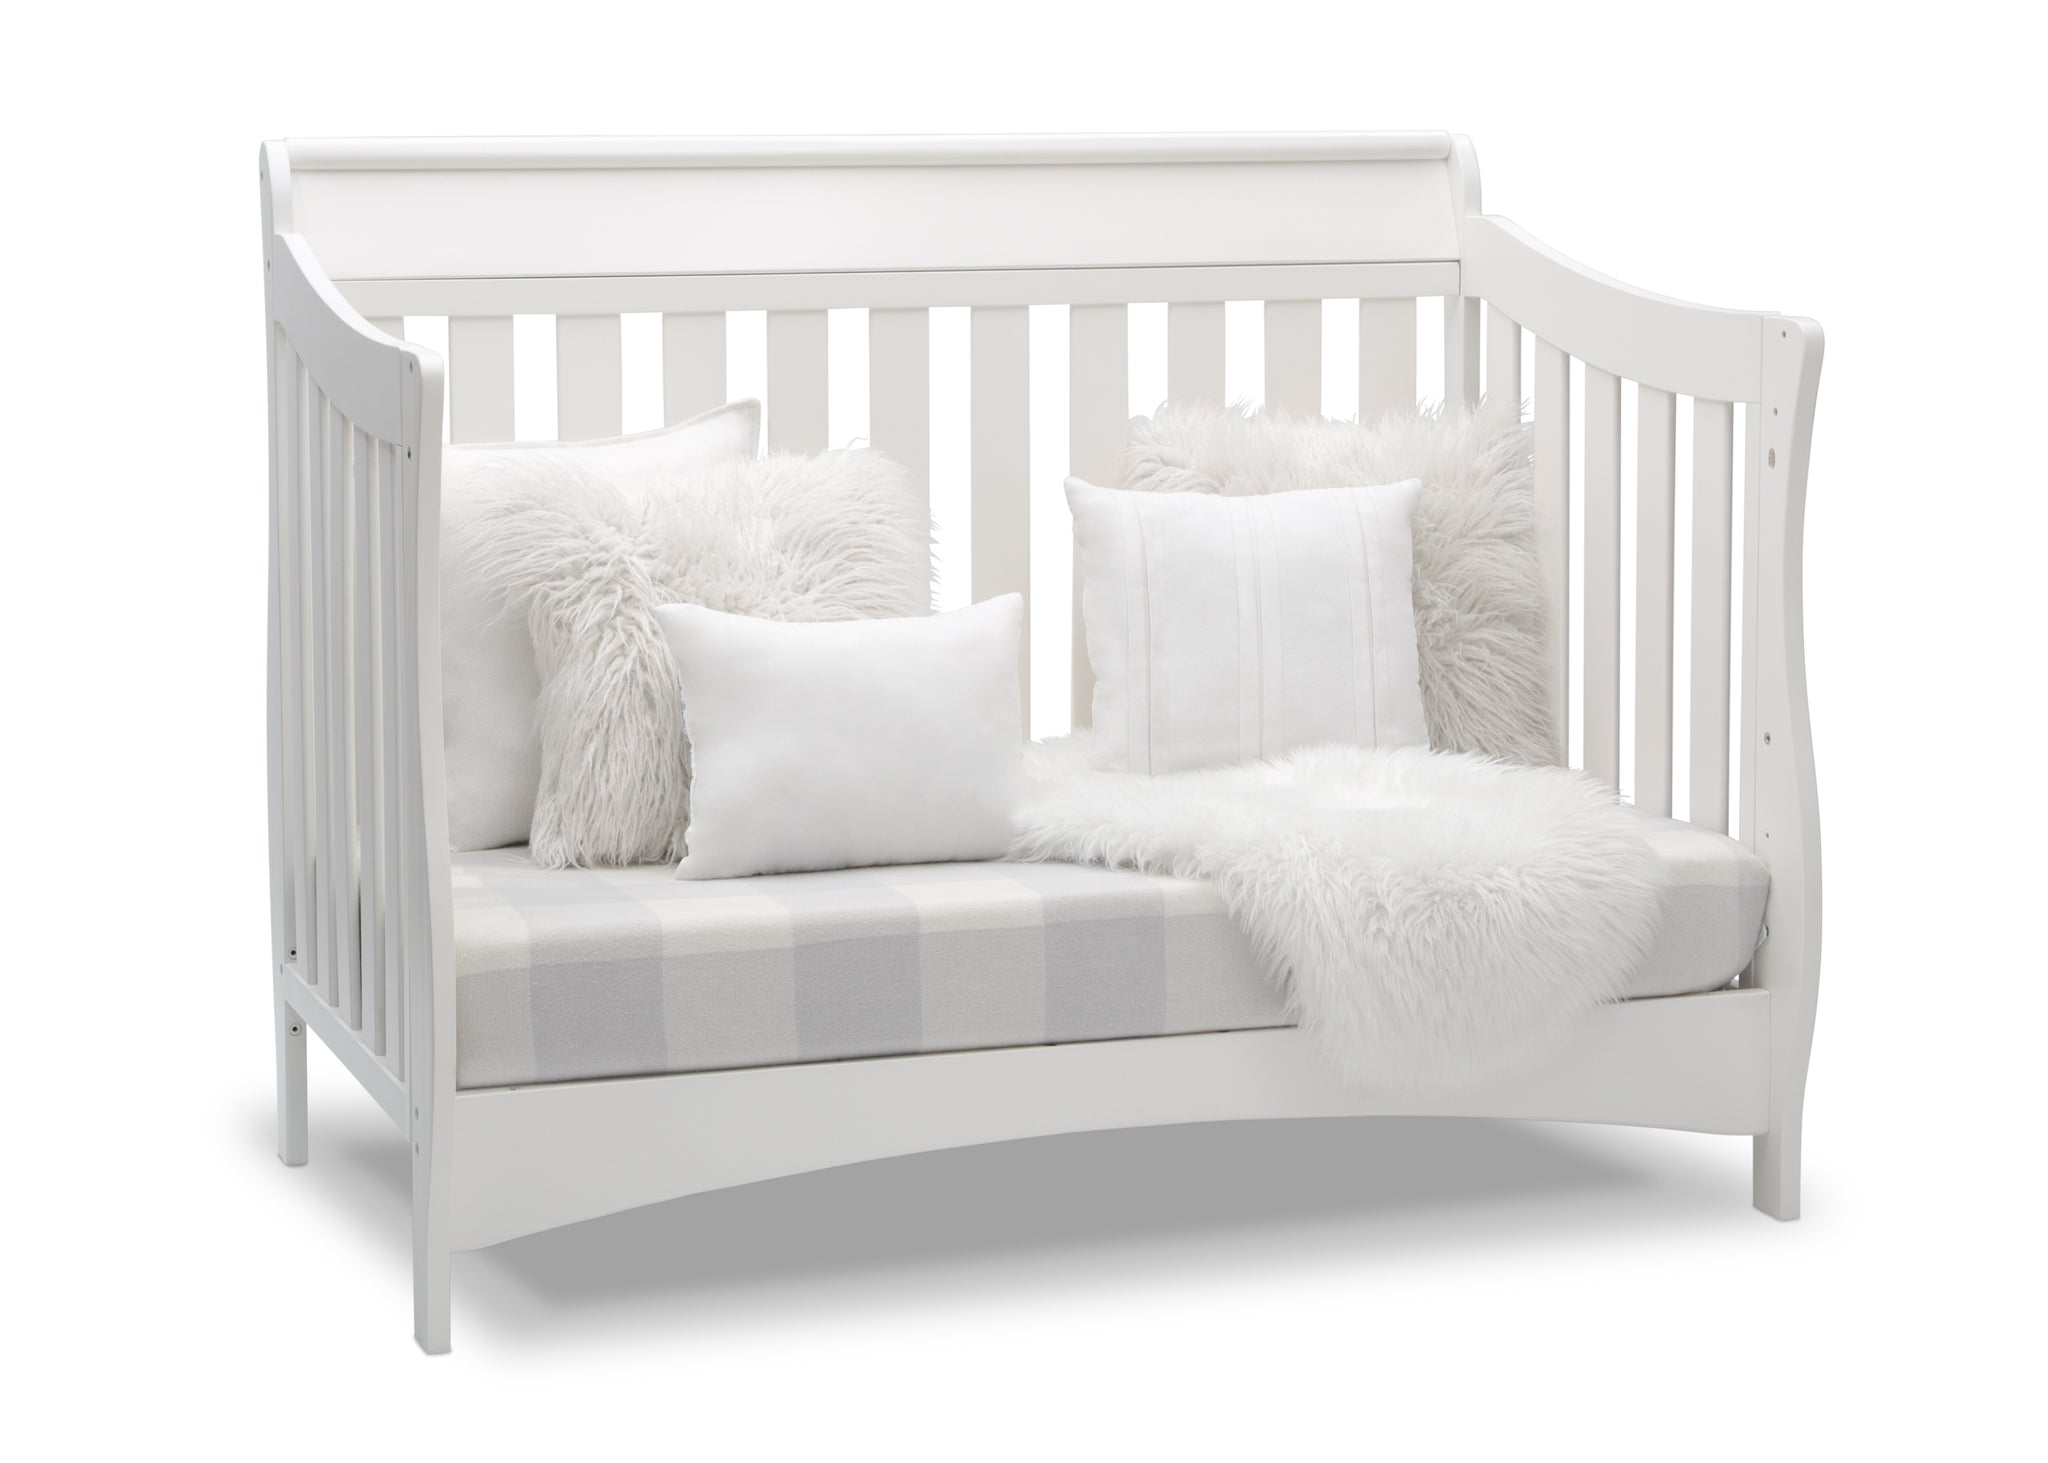 Delta Children Bianca White (130) Bentley S Series Deluxe 6-in-1 Convertible Crib, Right Sofa Bed Silo View